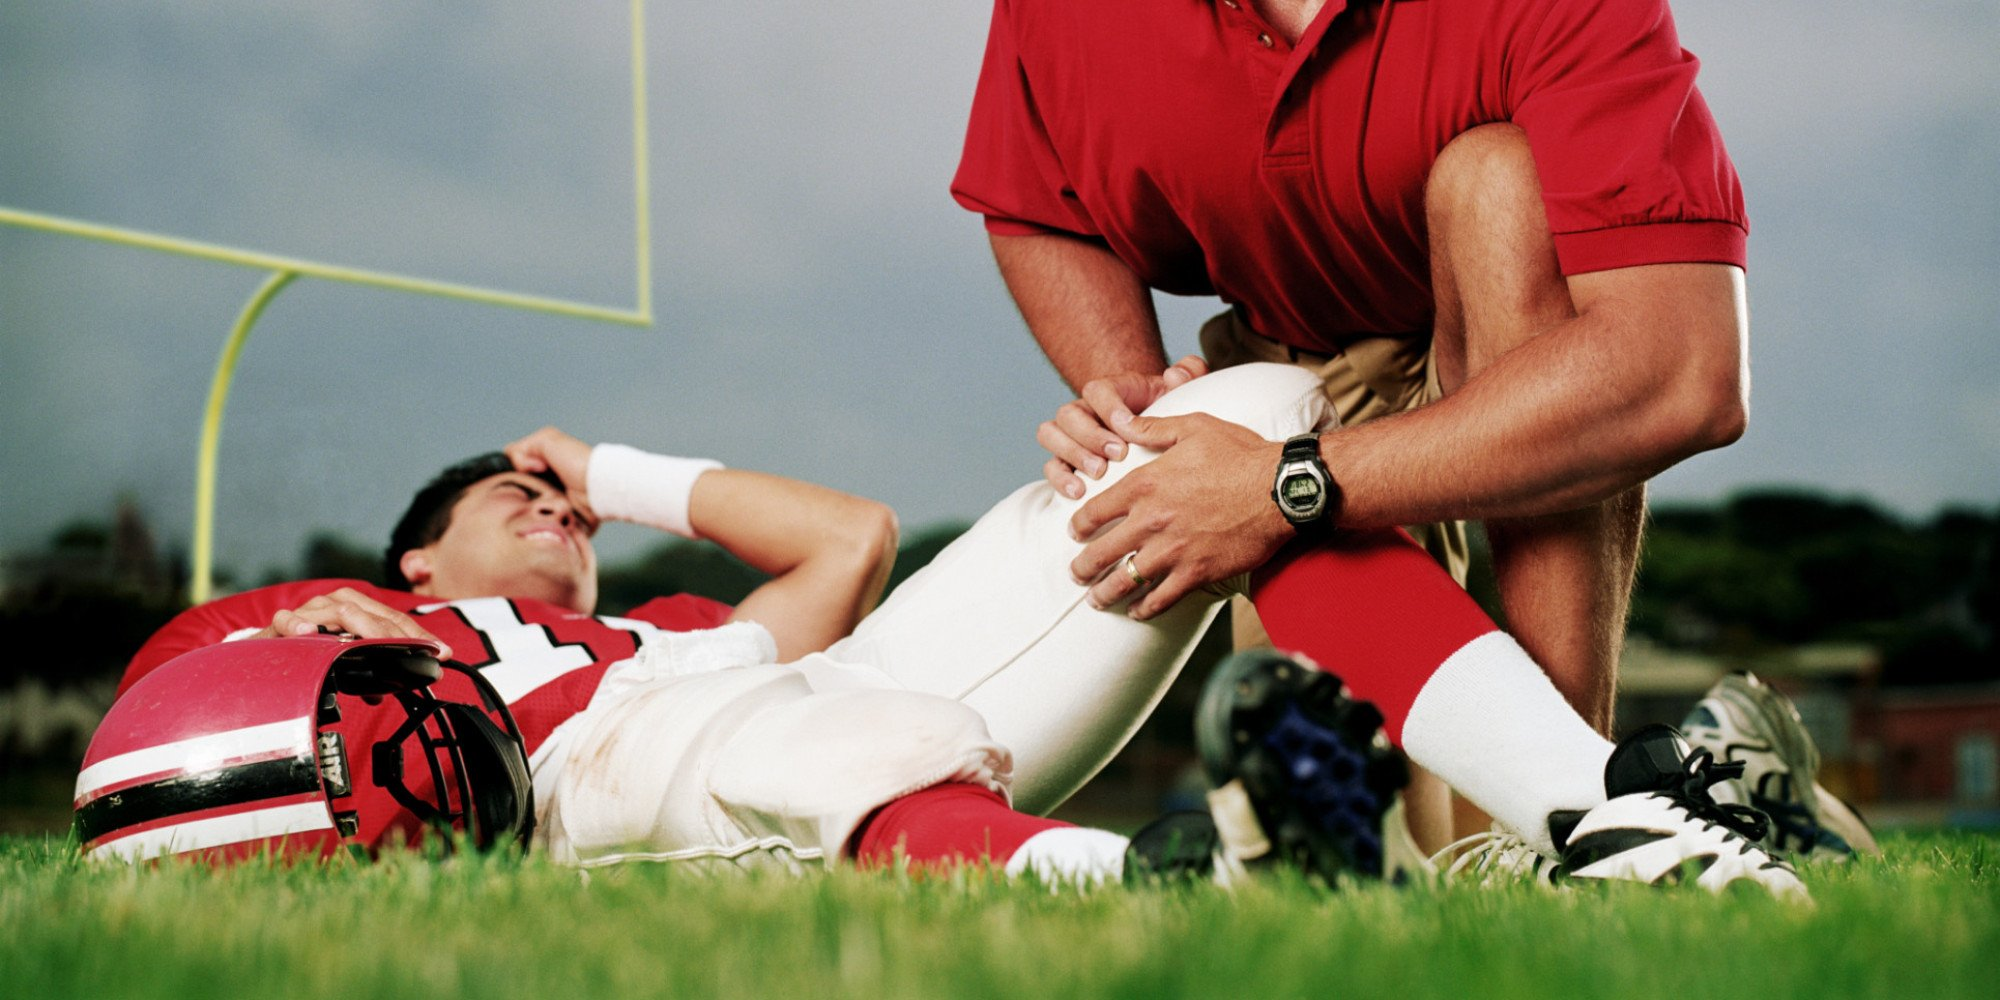 Sports Injuries: Psychological Effects & Prevention Tips